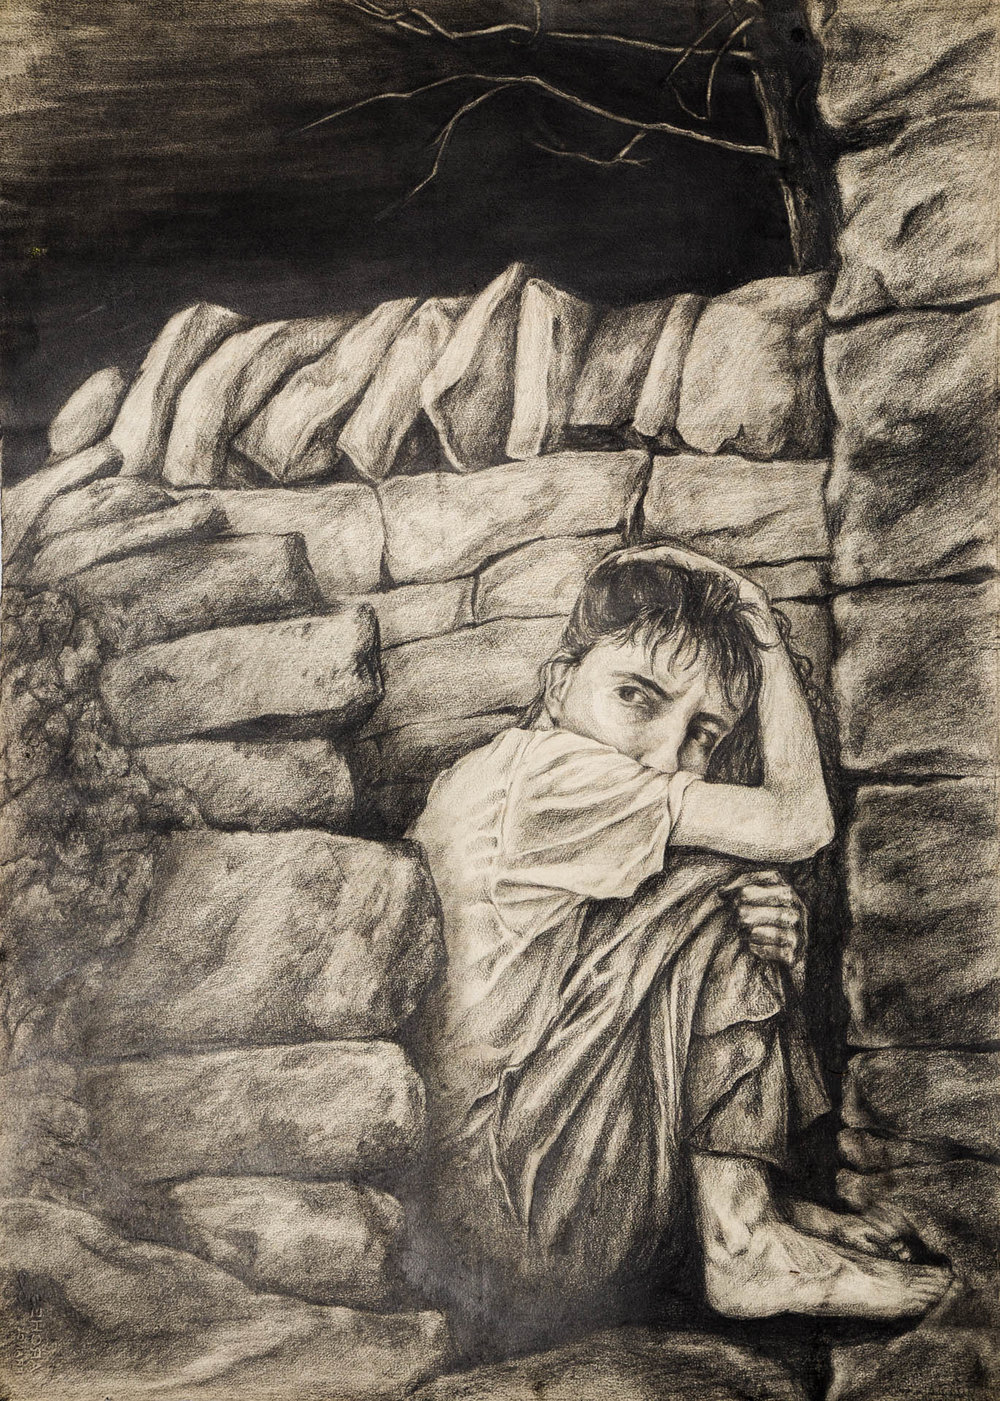 """LOOKING WITHIN"", 1987, (36 x 48 inches),  graphite, 1st self-portrait (not in current exhibit)"